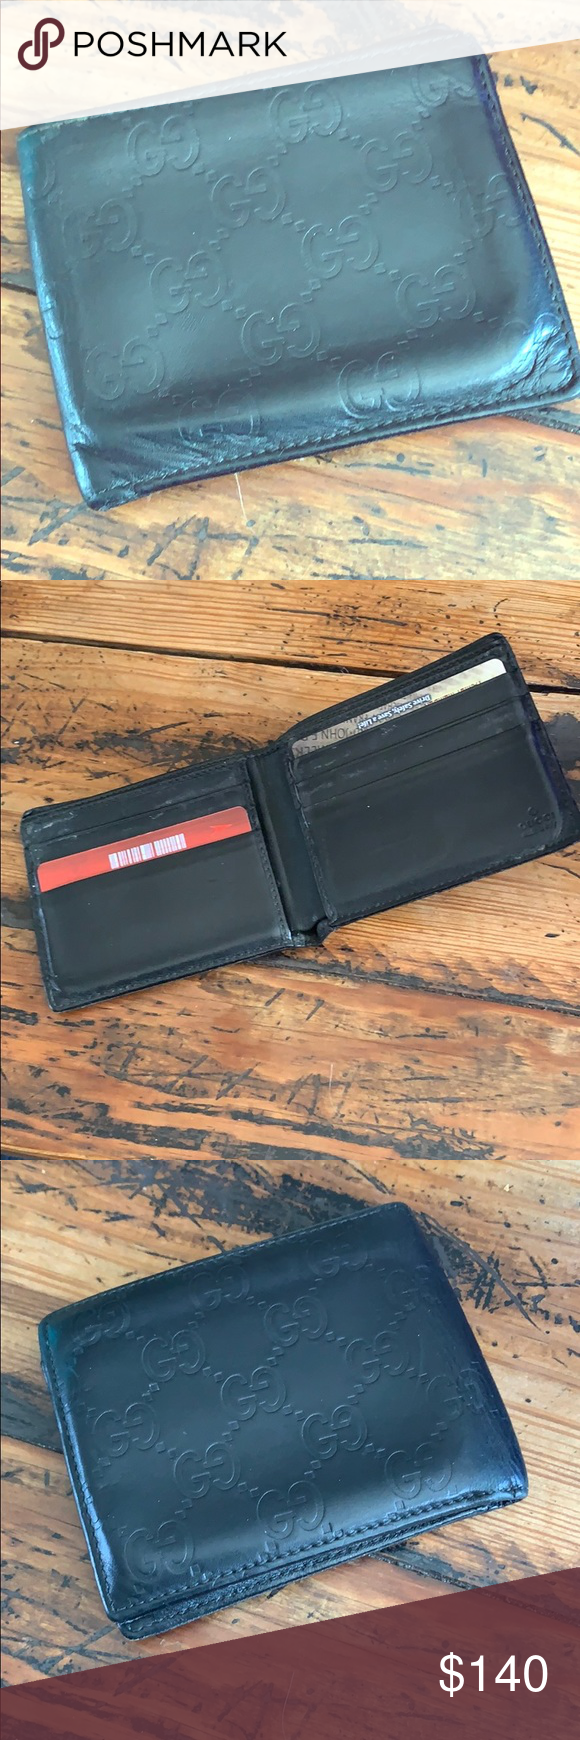 800d110db761be Gucci Signature Men's Wallet Good condition. Black leather with embossed GG  design. 6 credit card slots and double section bill fold. 100% authentic.